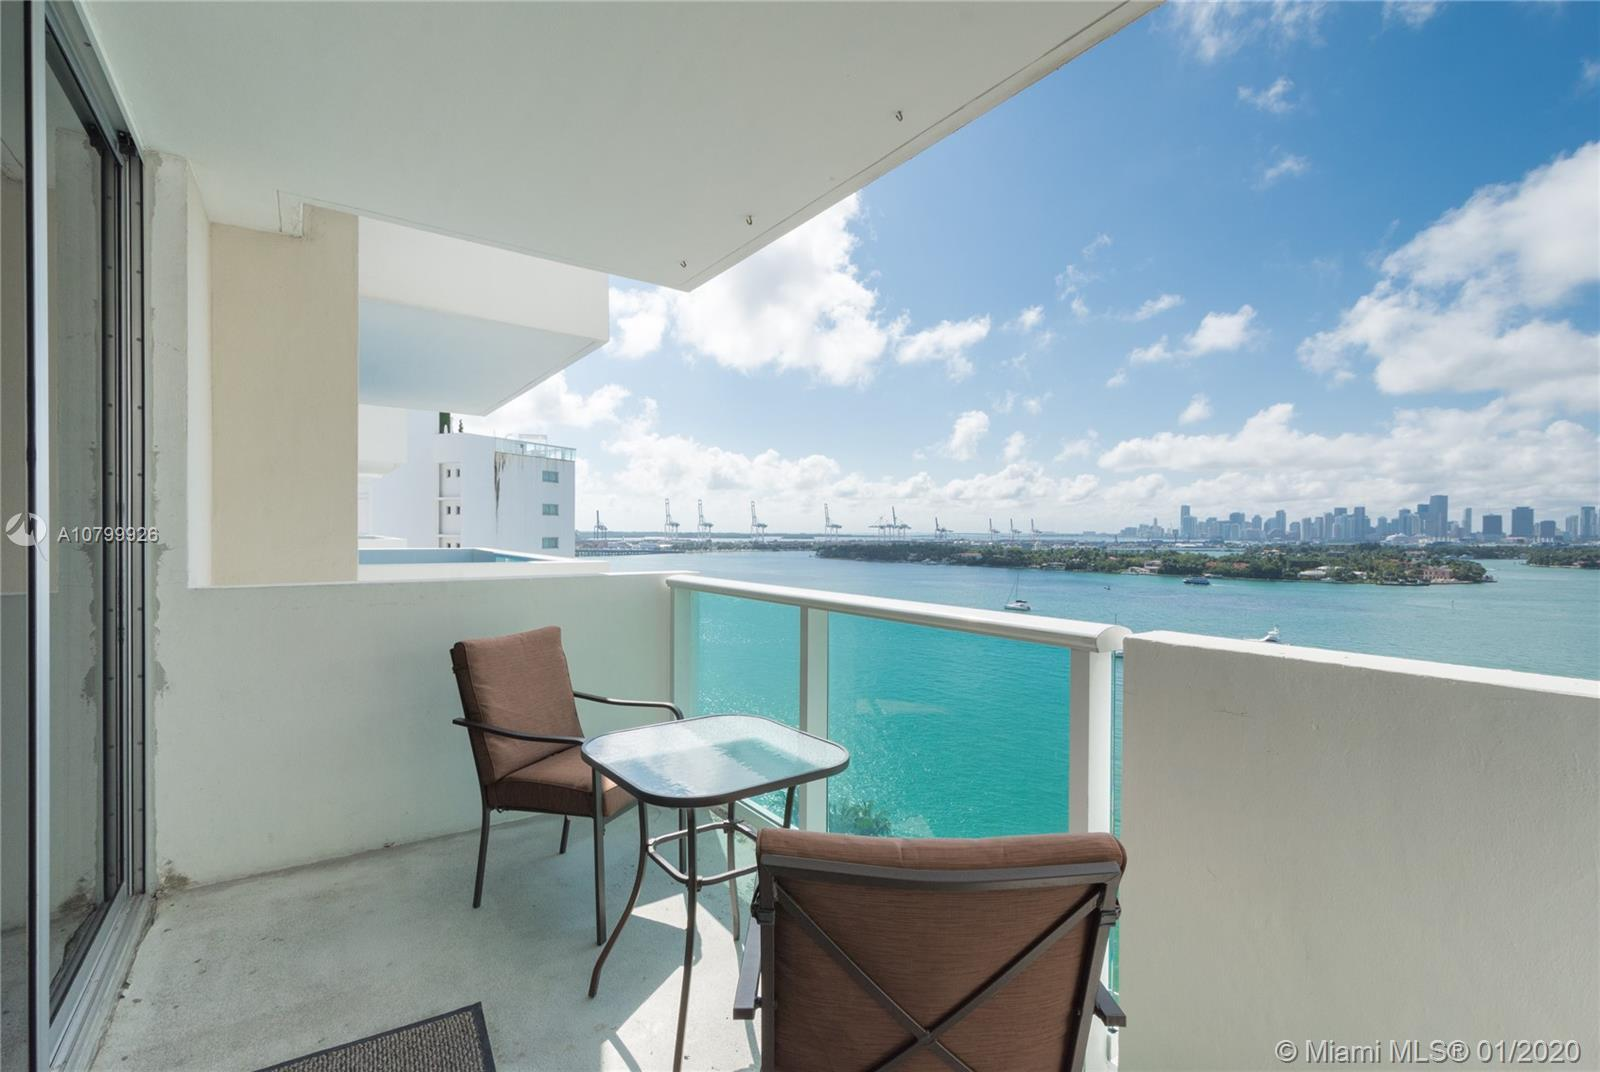 Direct, wide bay views from this high floor studio. Watch the cruise ships pass from your spacious t